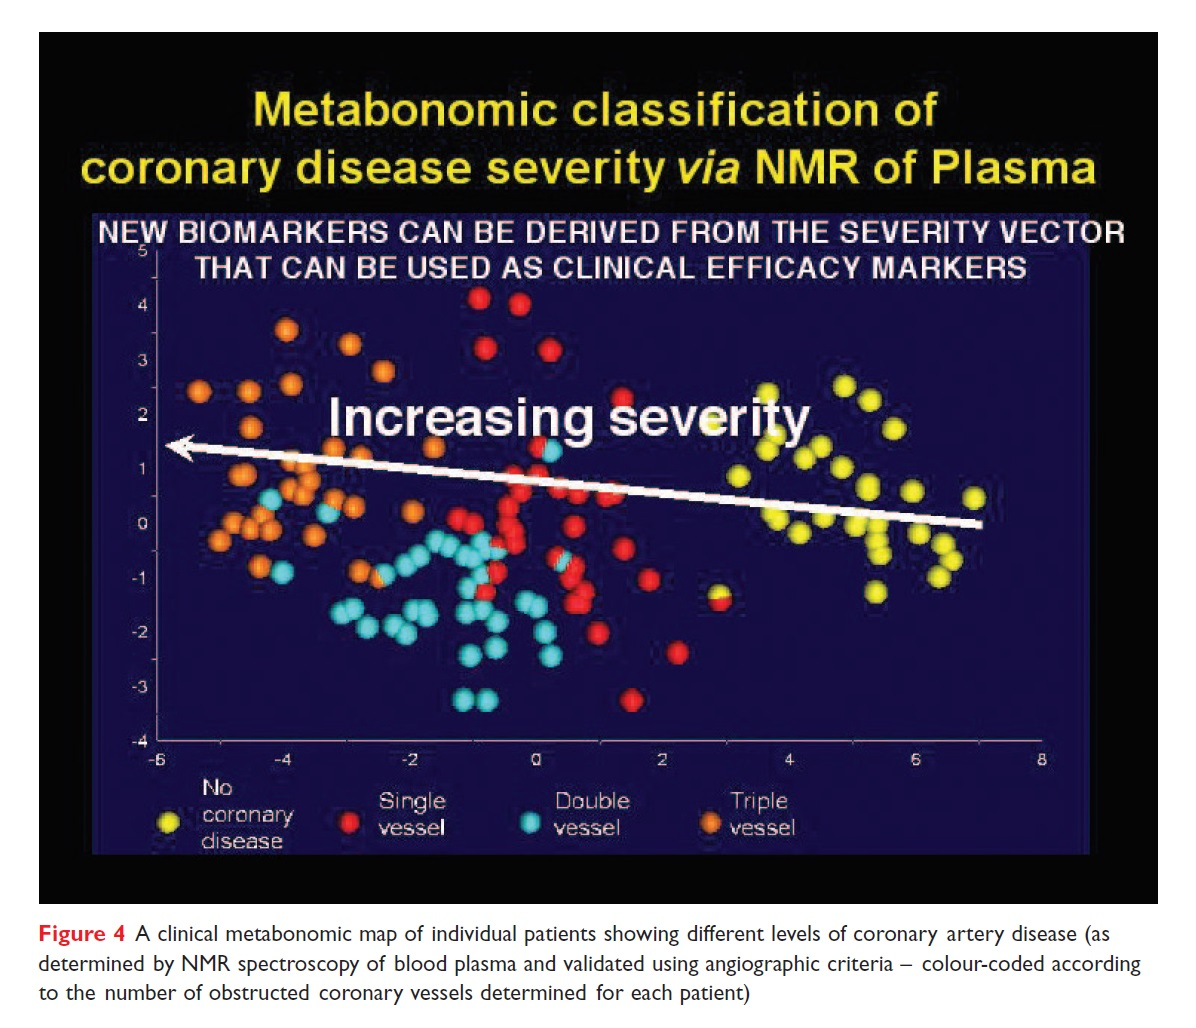 Figure 4 A clinical metabonomic map of individual patients showing different levels of coronary artery disease